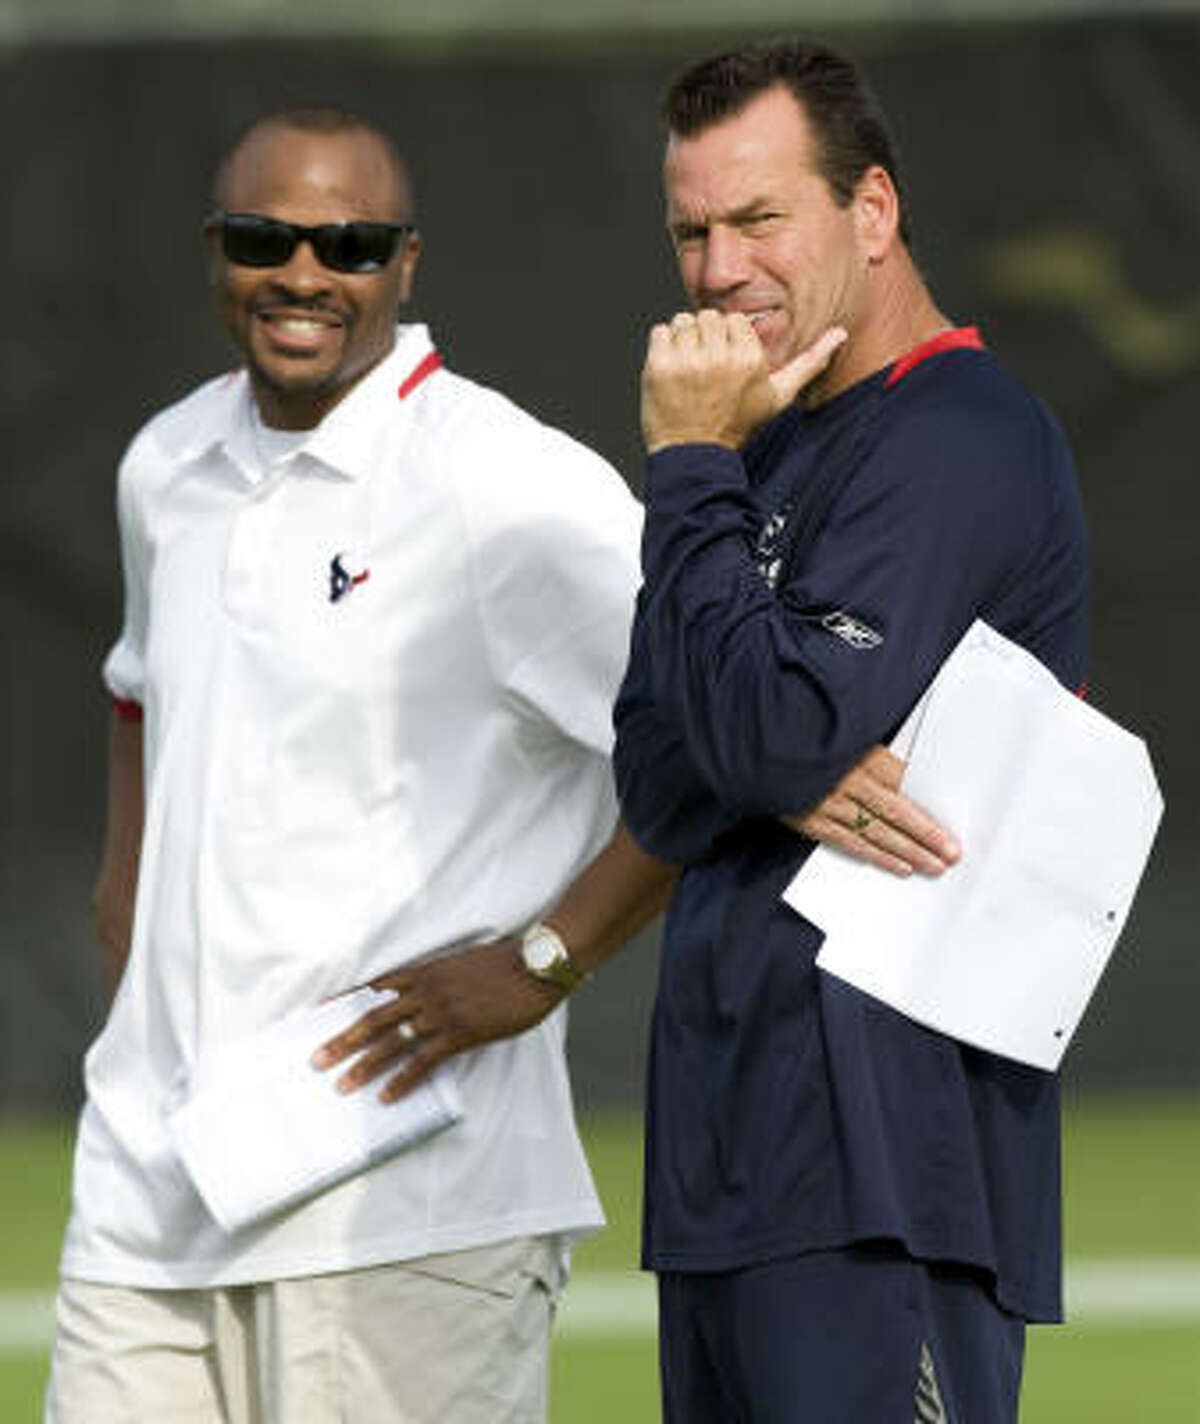 Texans general manager Rick Smith and head coach Gary Kubiak inherited the NFL's worst team and needed two off-seasons to replace most of the roster.